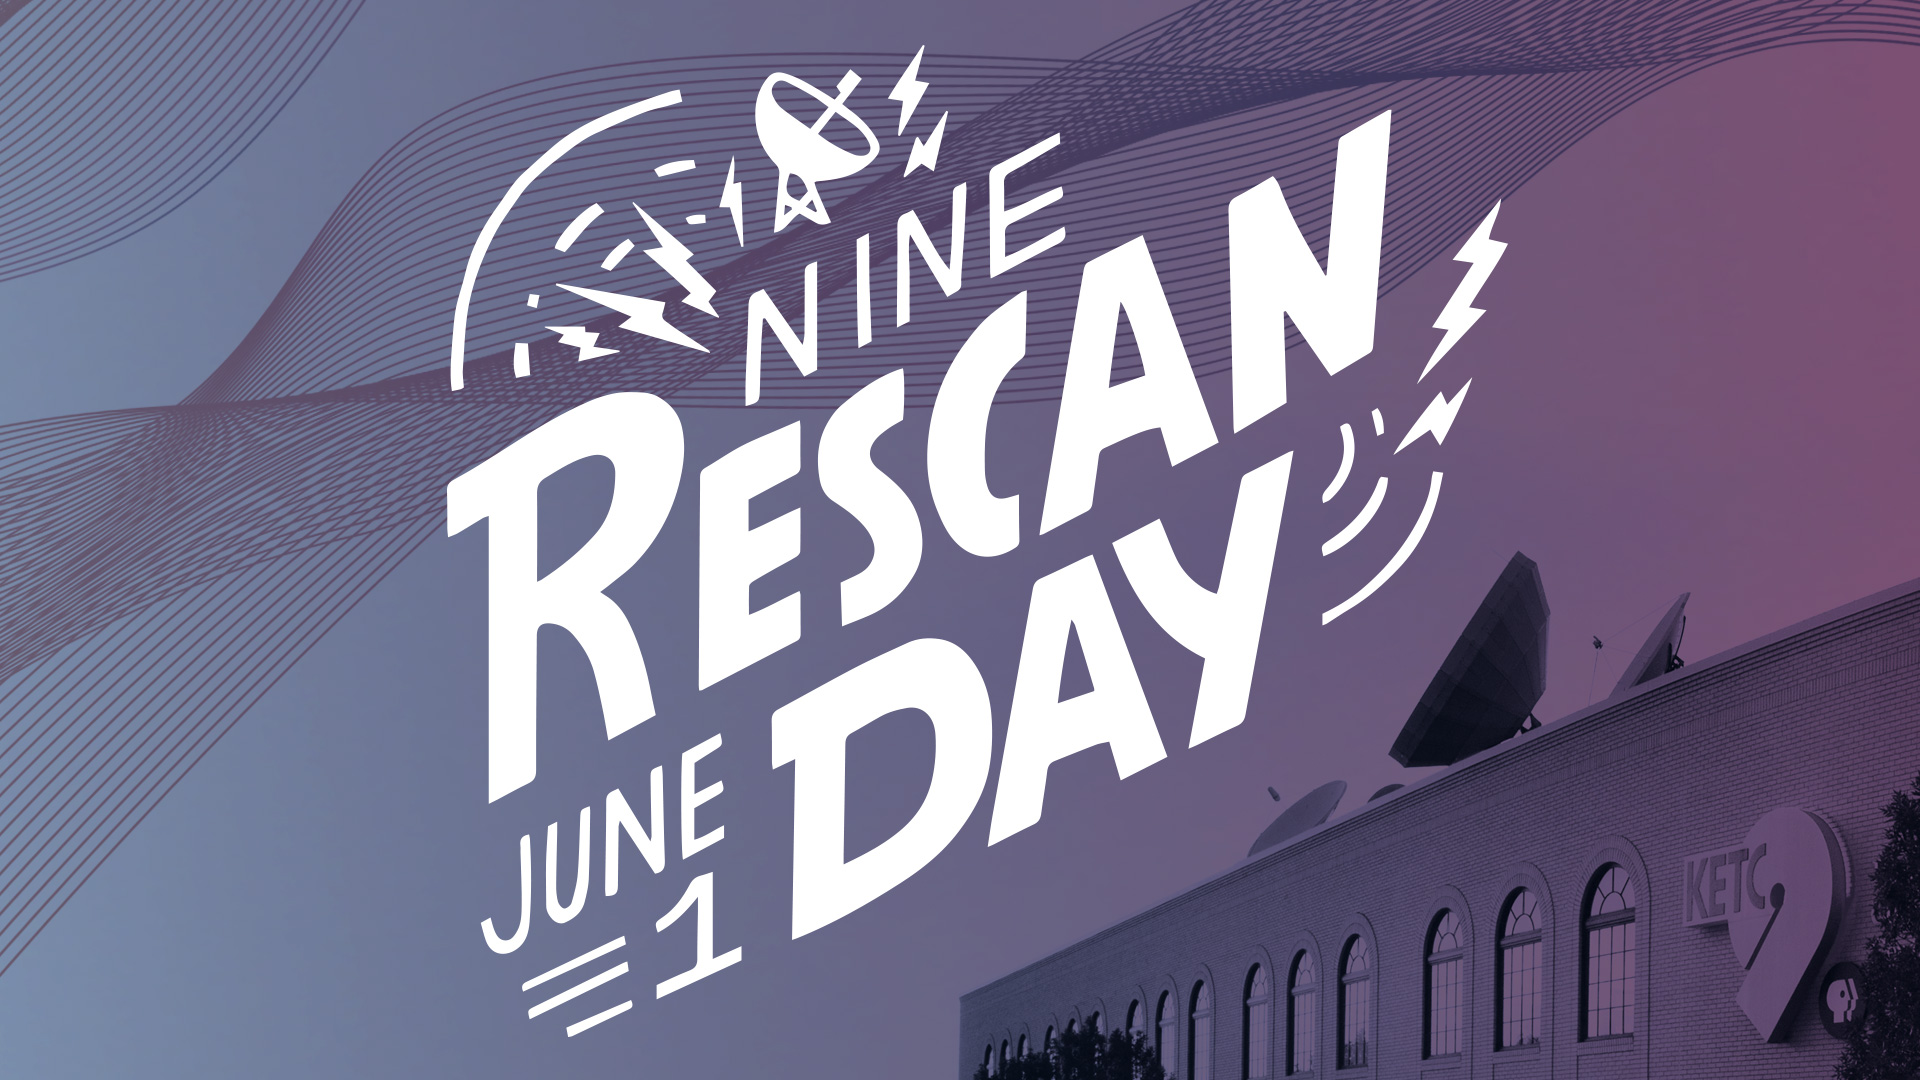 Rescan Day on June 1, 2018